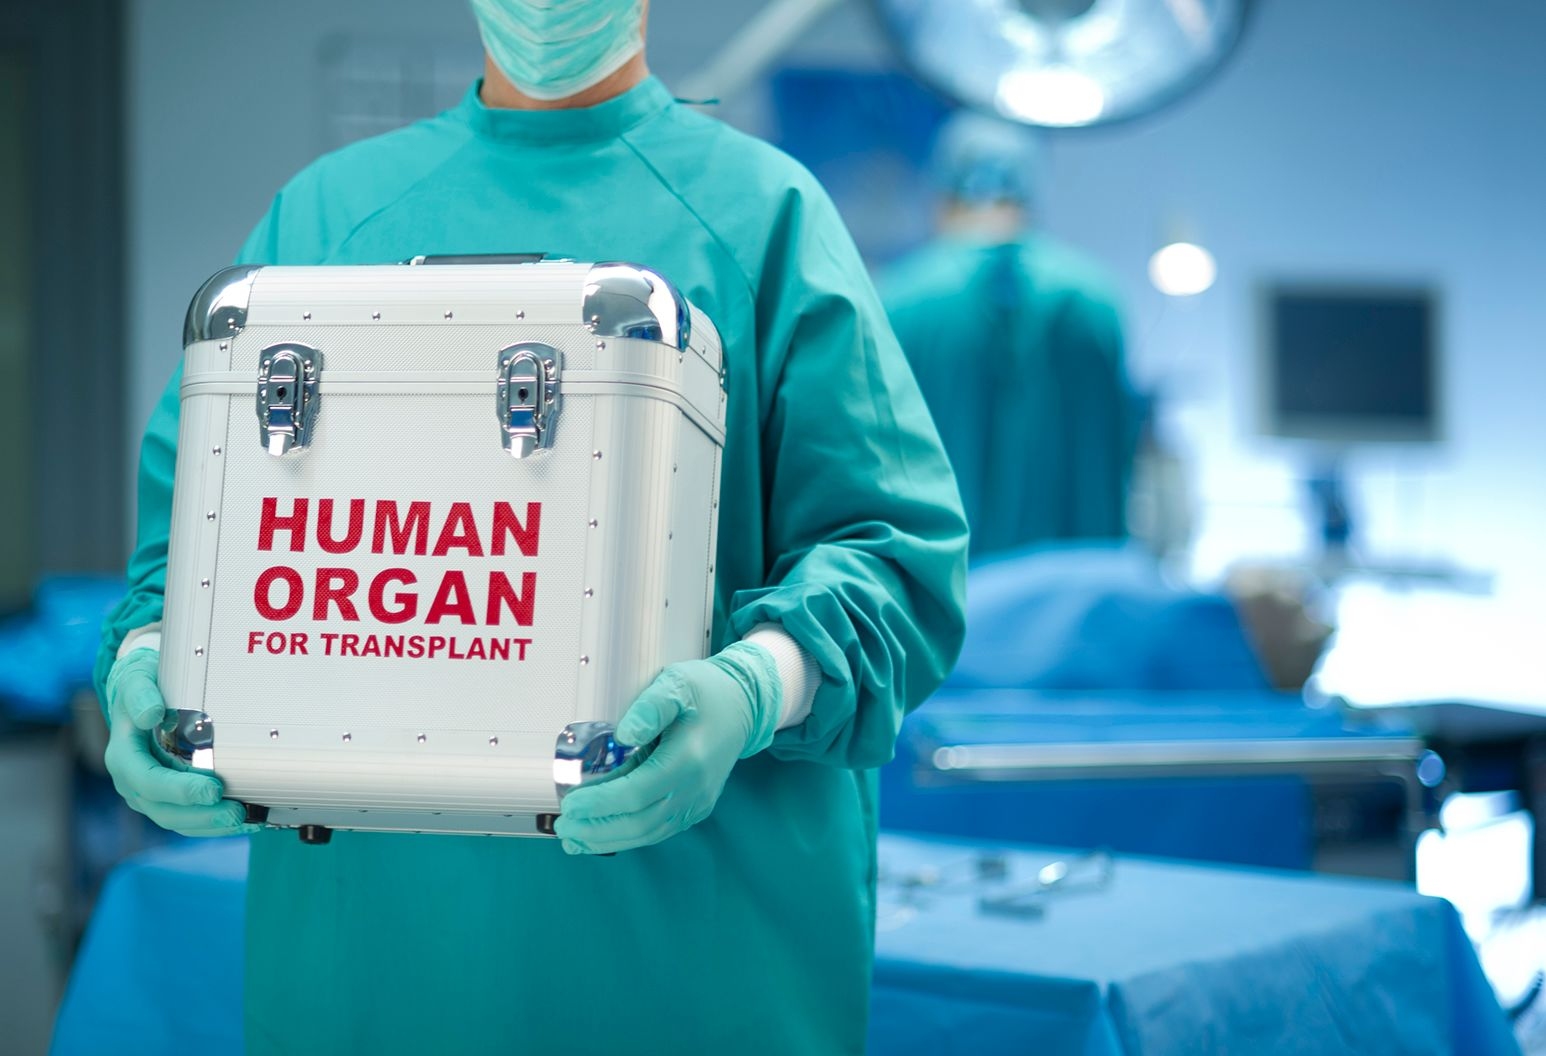 A person dressed in green surgical scrubs and wearing a green facemask and green rubber gloves is standing in an operating room and holds a grey metal box that has the words Human Organ for Transplant written on the front.